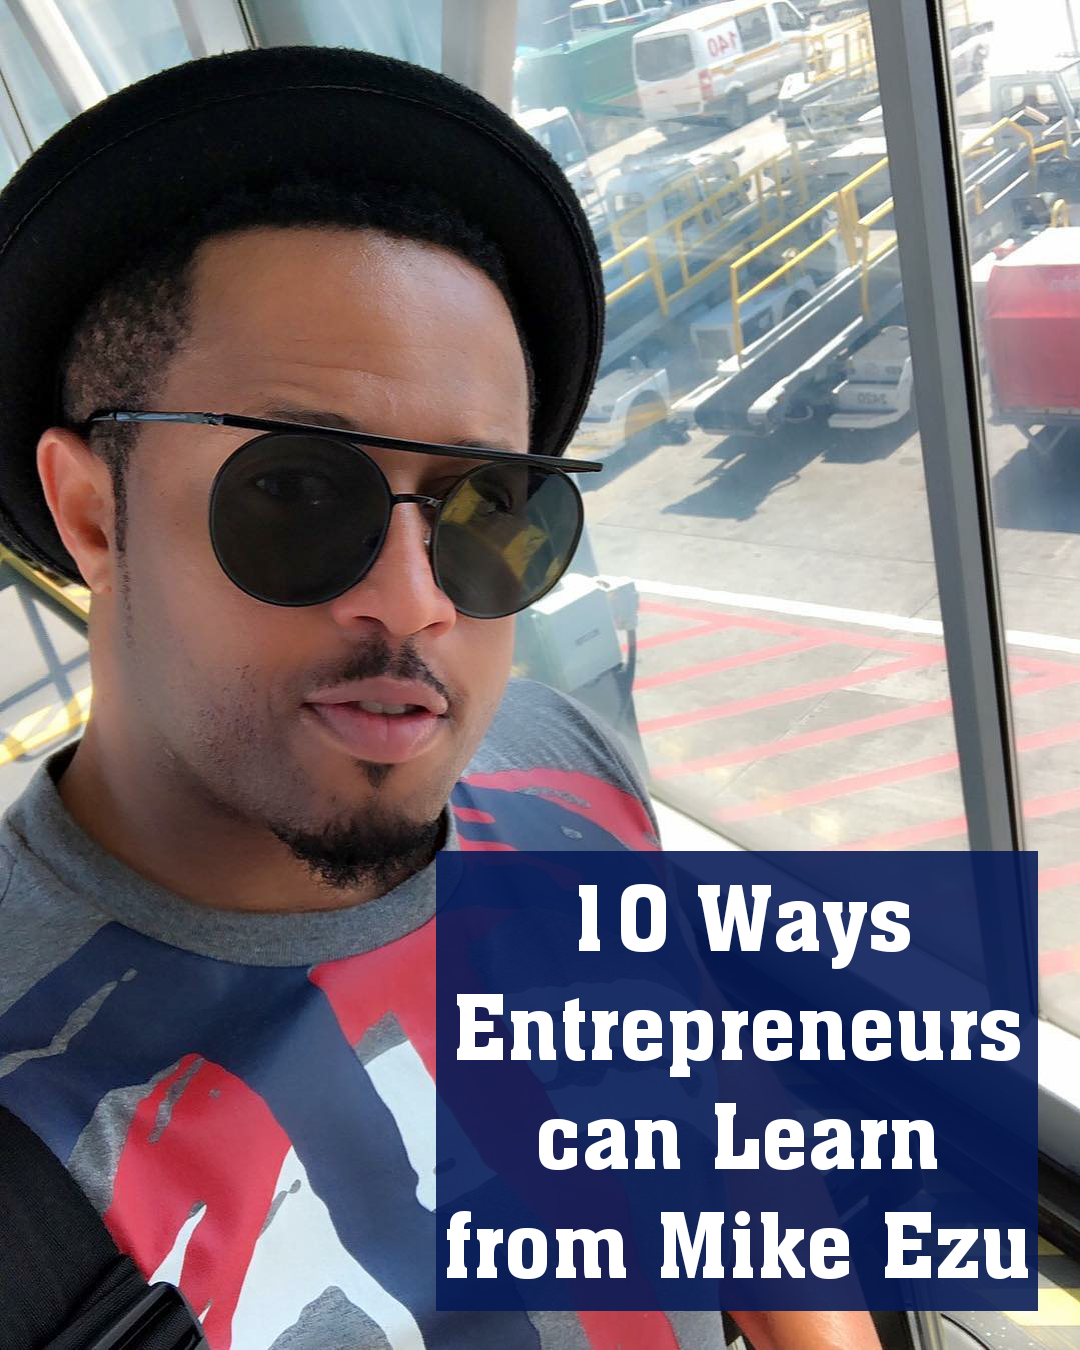 10 Ways Entrepreneurs Can Learn from Mike Ezu